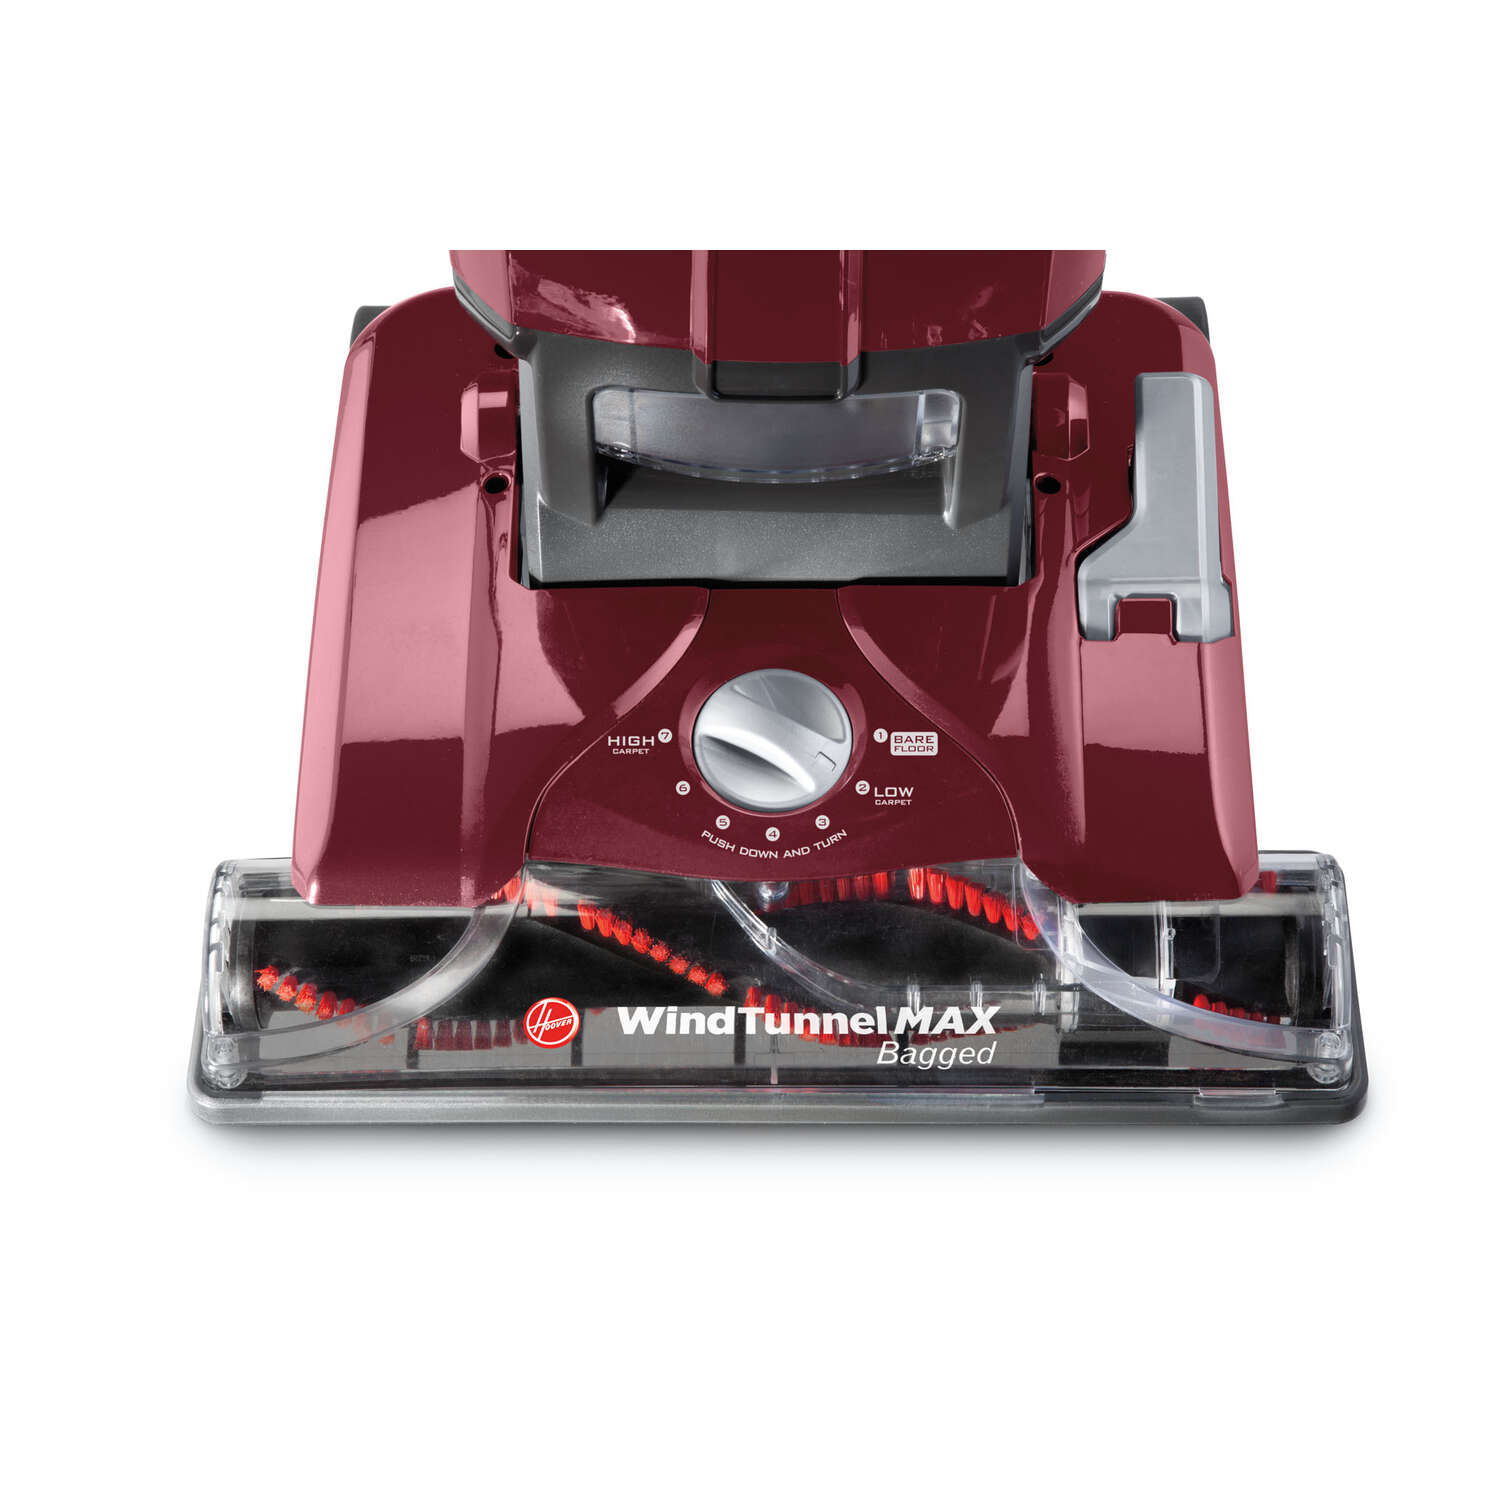 Hoover  WindTunnel MAX  Bagged  Upright Vacuum  12 amps HEPA  Red